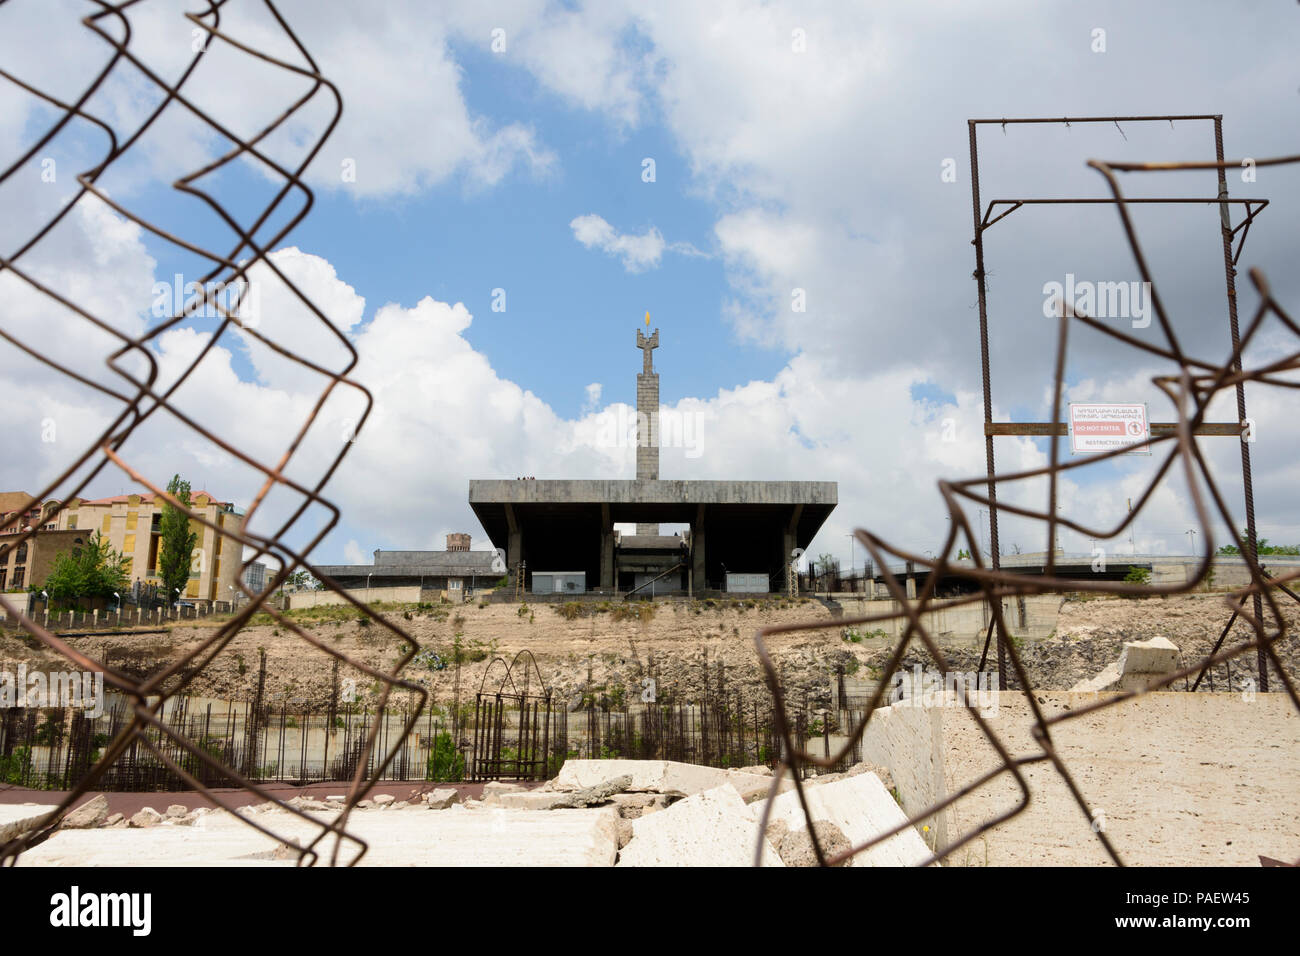 Constructionwork at the open air museum at the Cascade complex in Yerevan, Armenia. - Stock Image